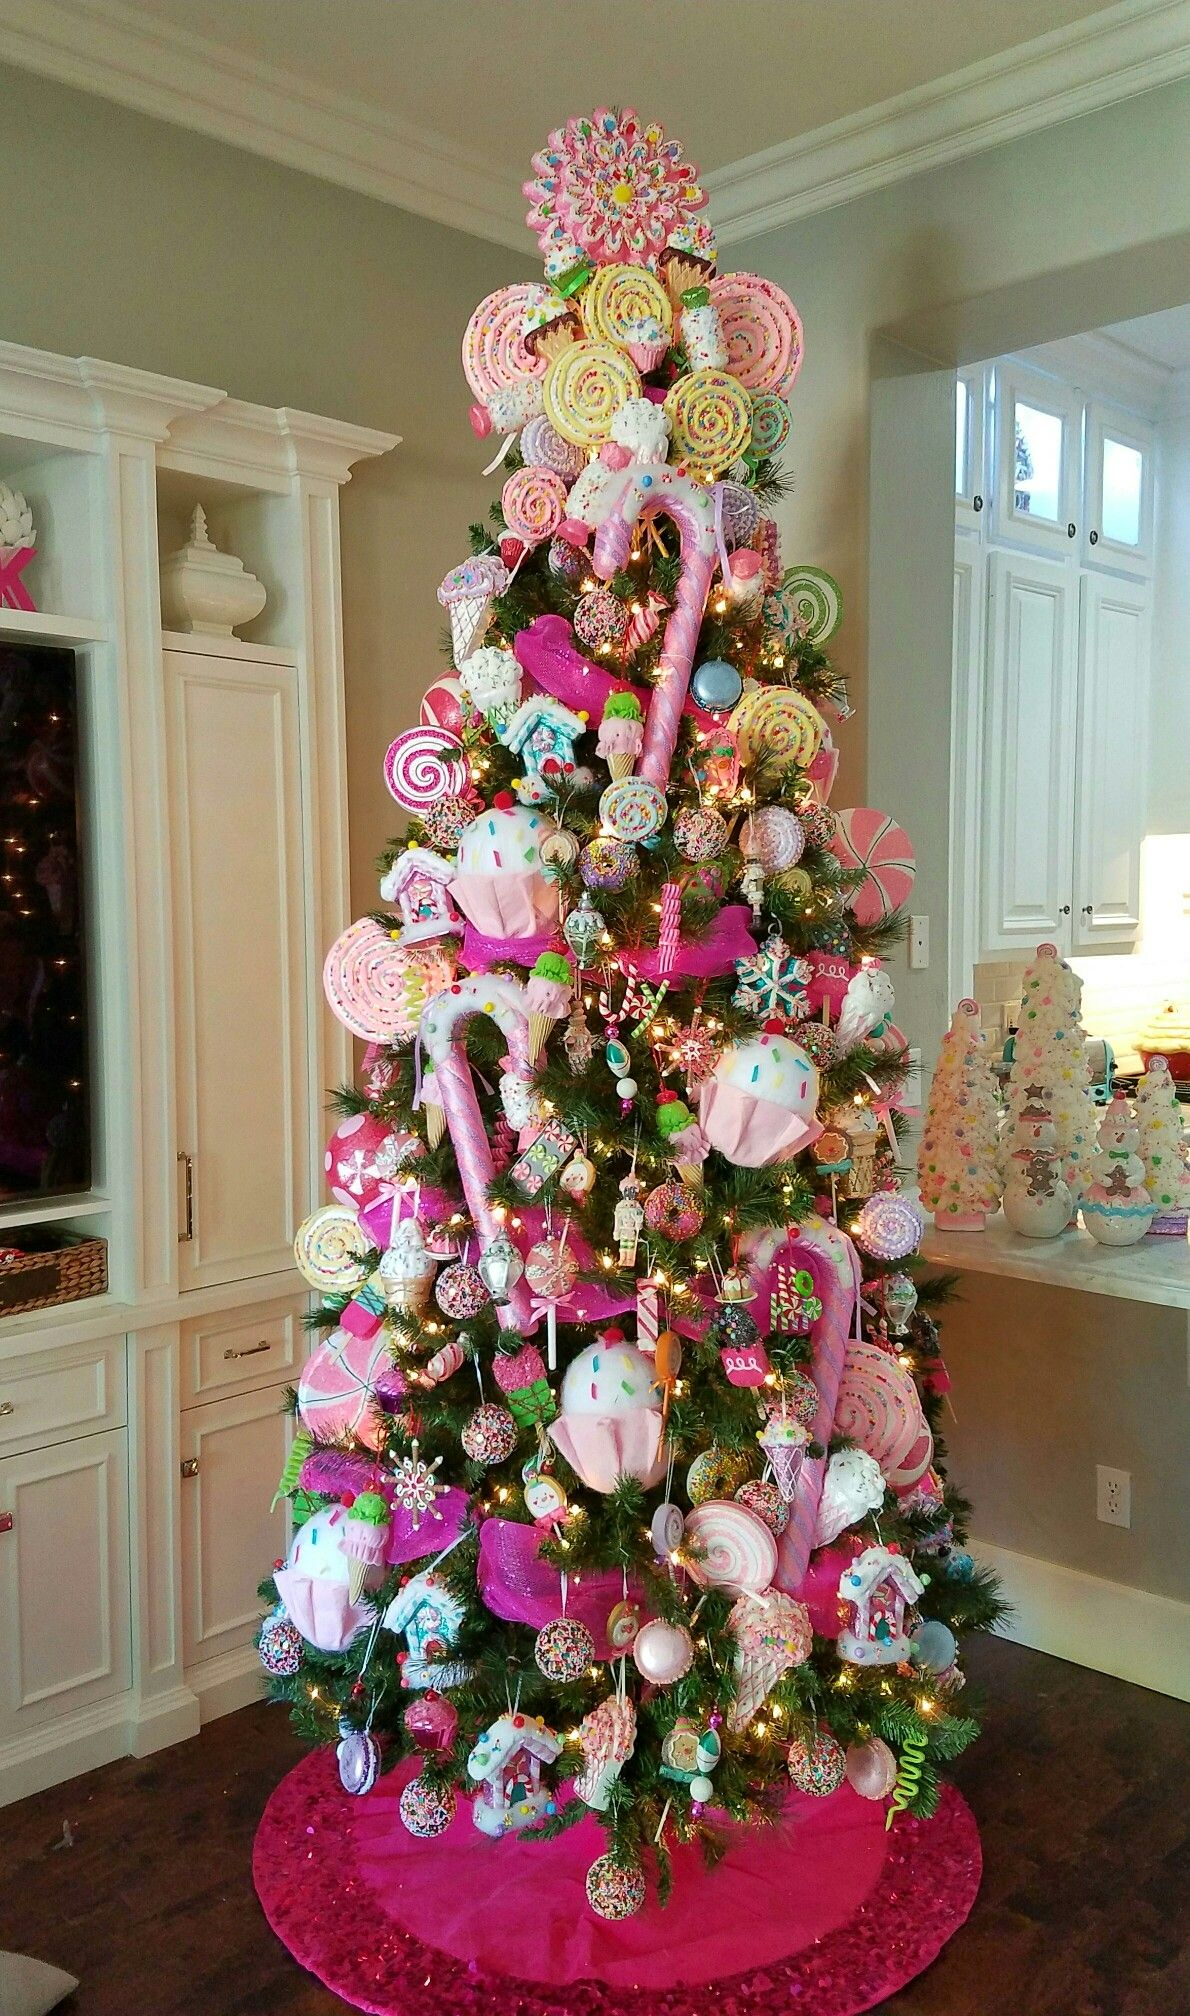 Candy Christmas tree. Candyland tree. Candy land tree. Sweet